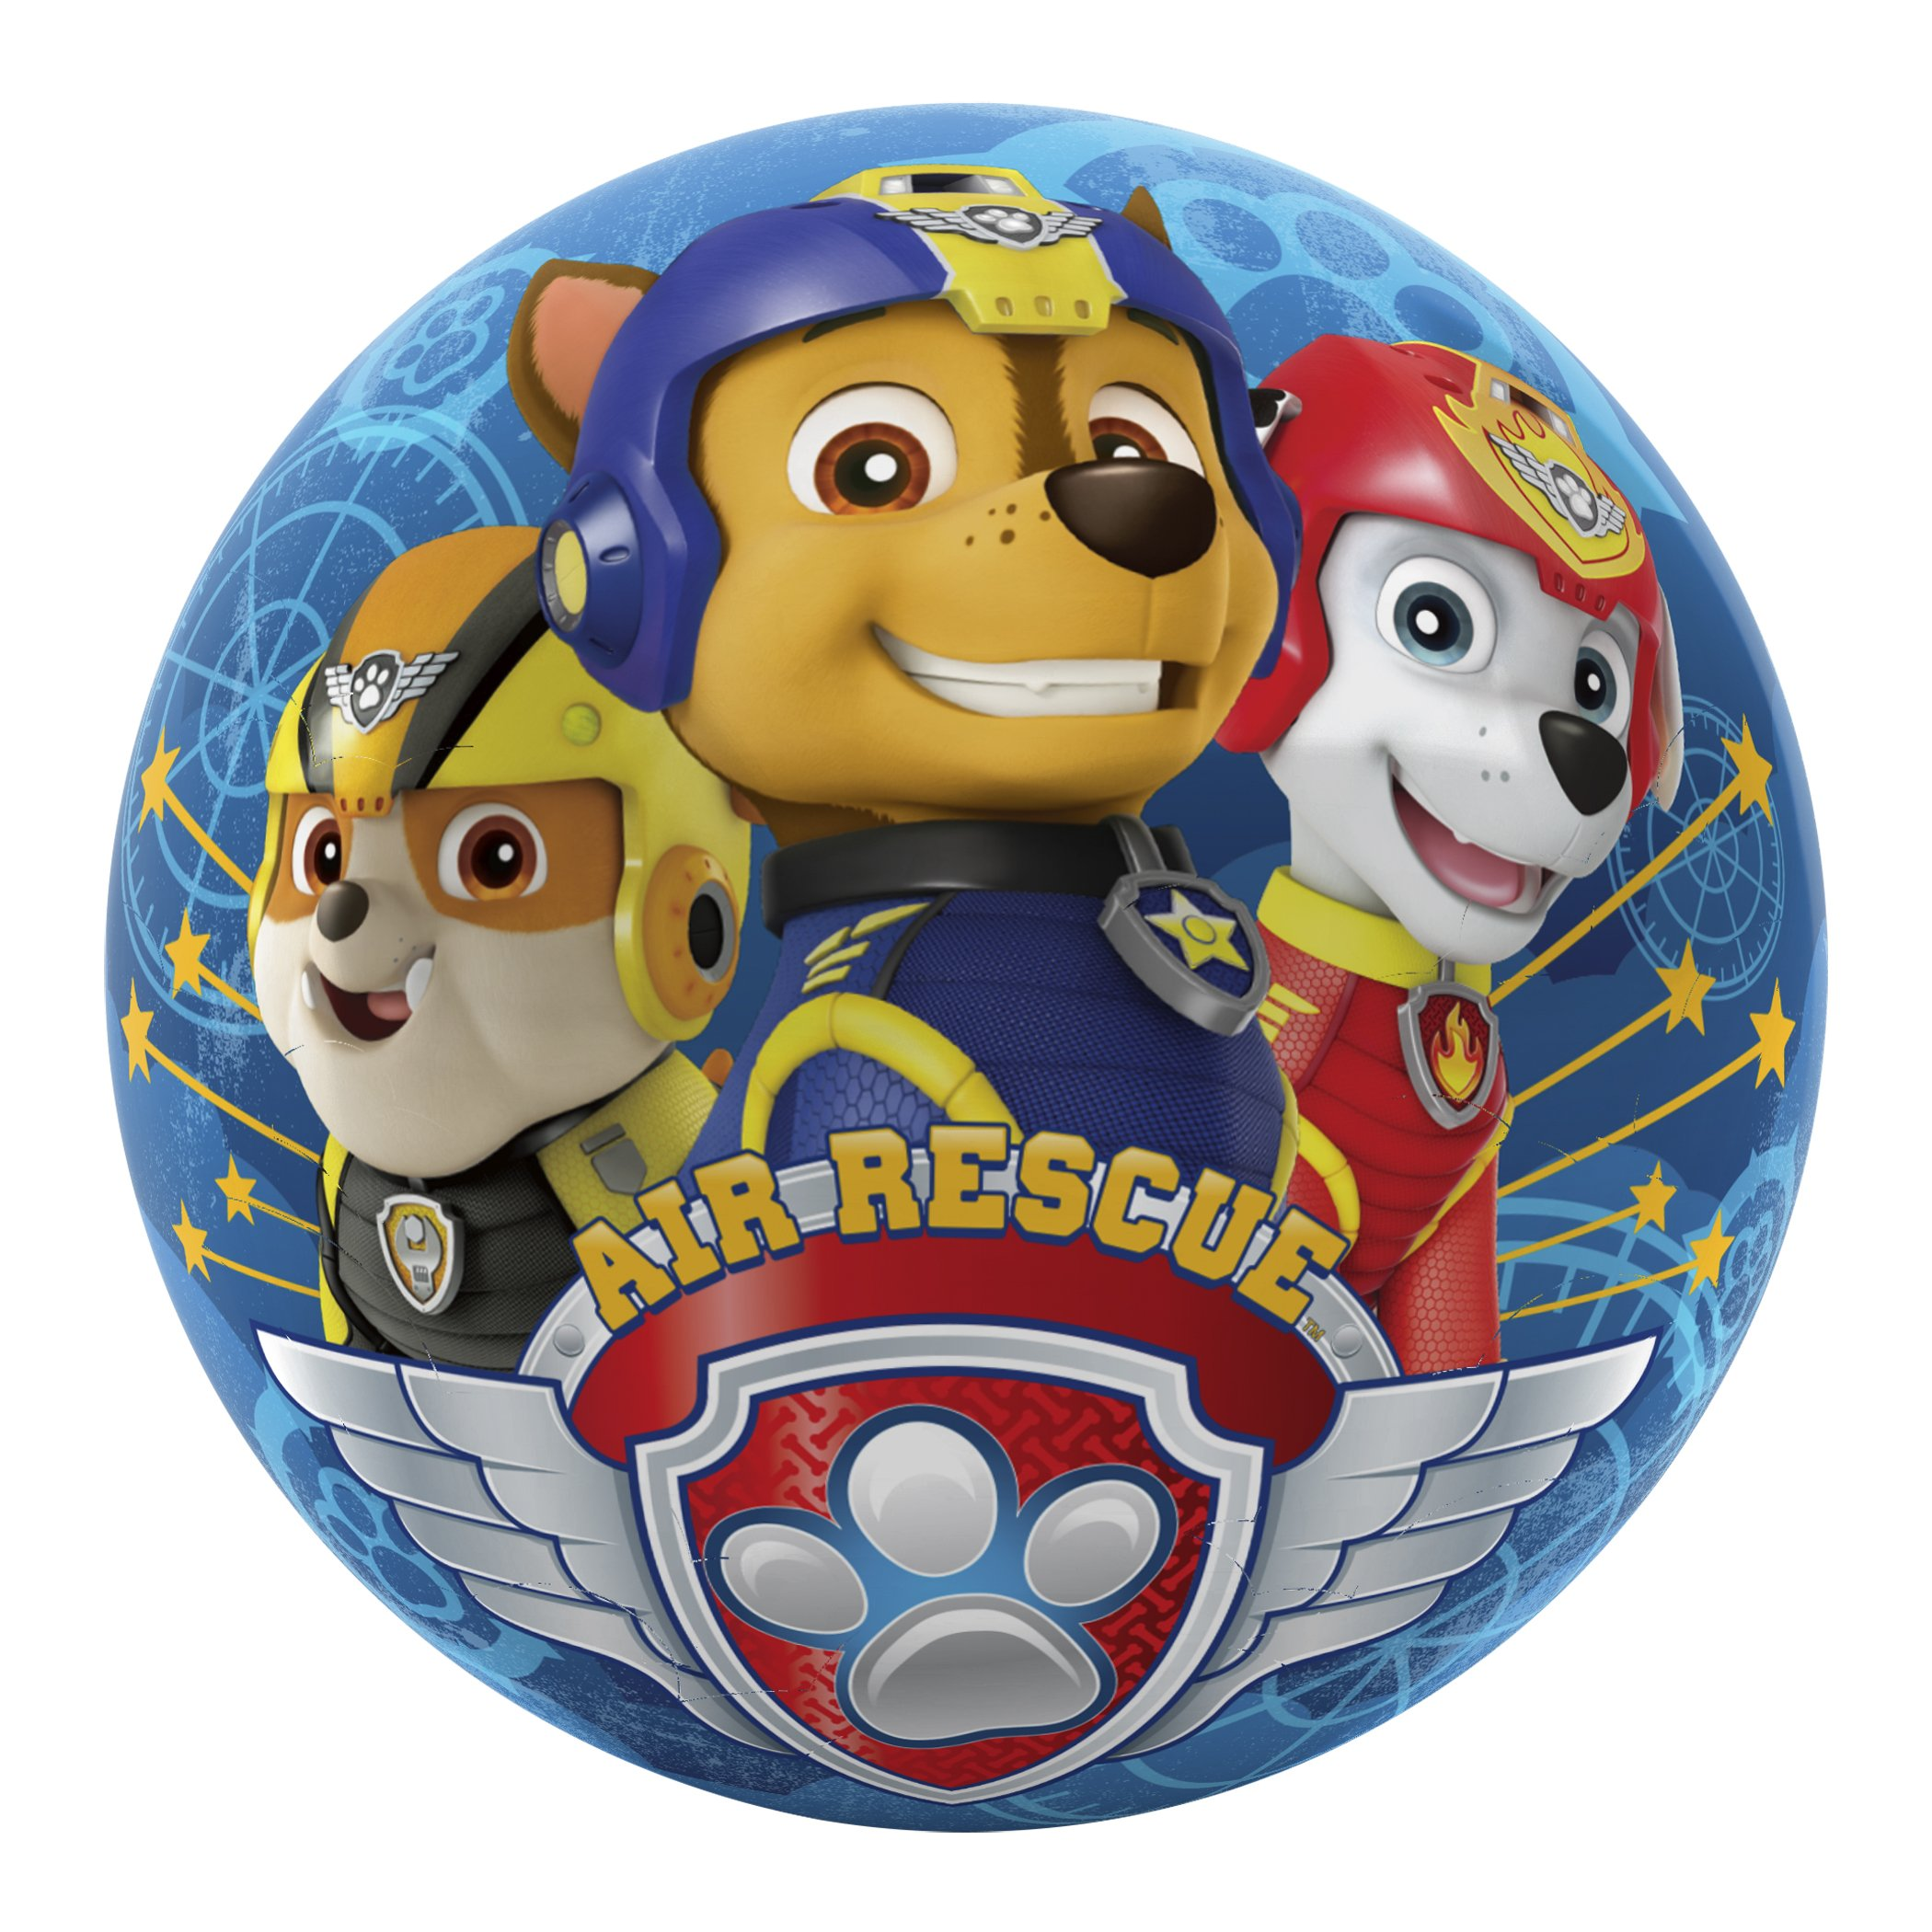 Hedstrom 6 Paw Patrol Vinyl Play Ball (8 Pack) by Hedstrom